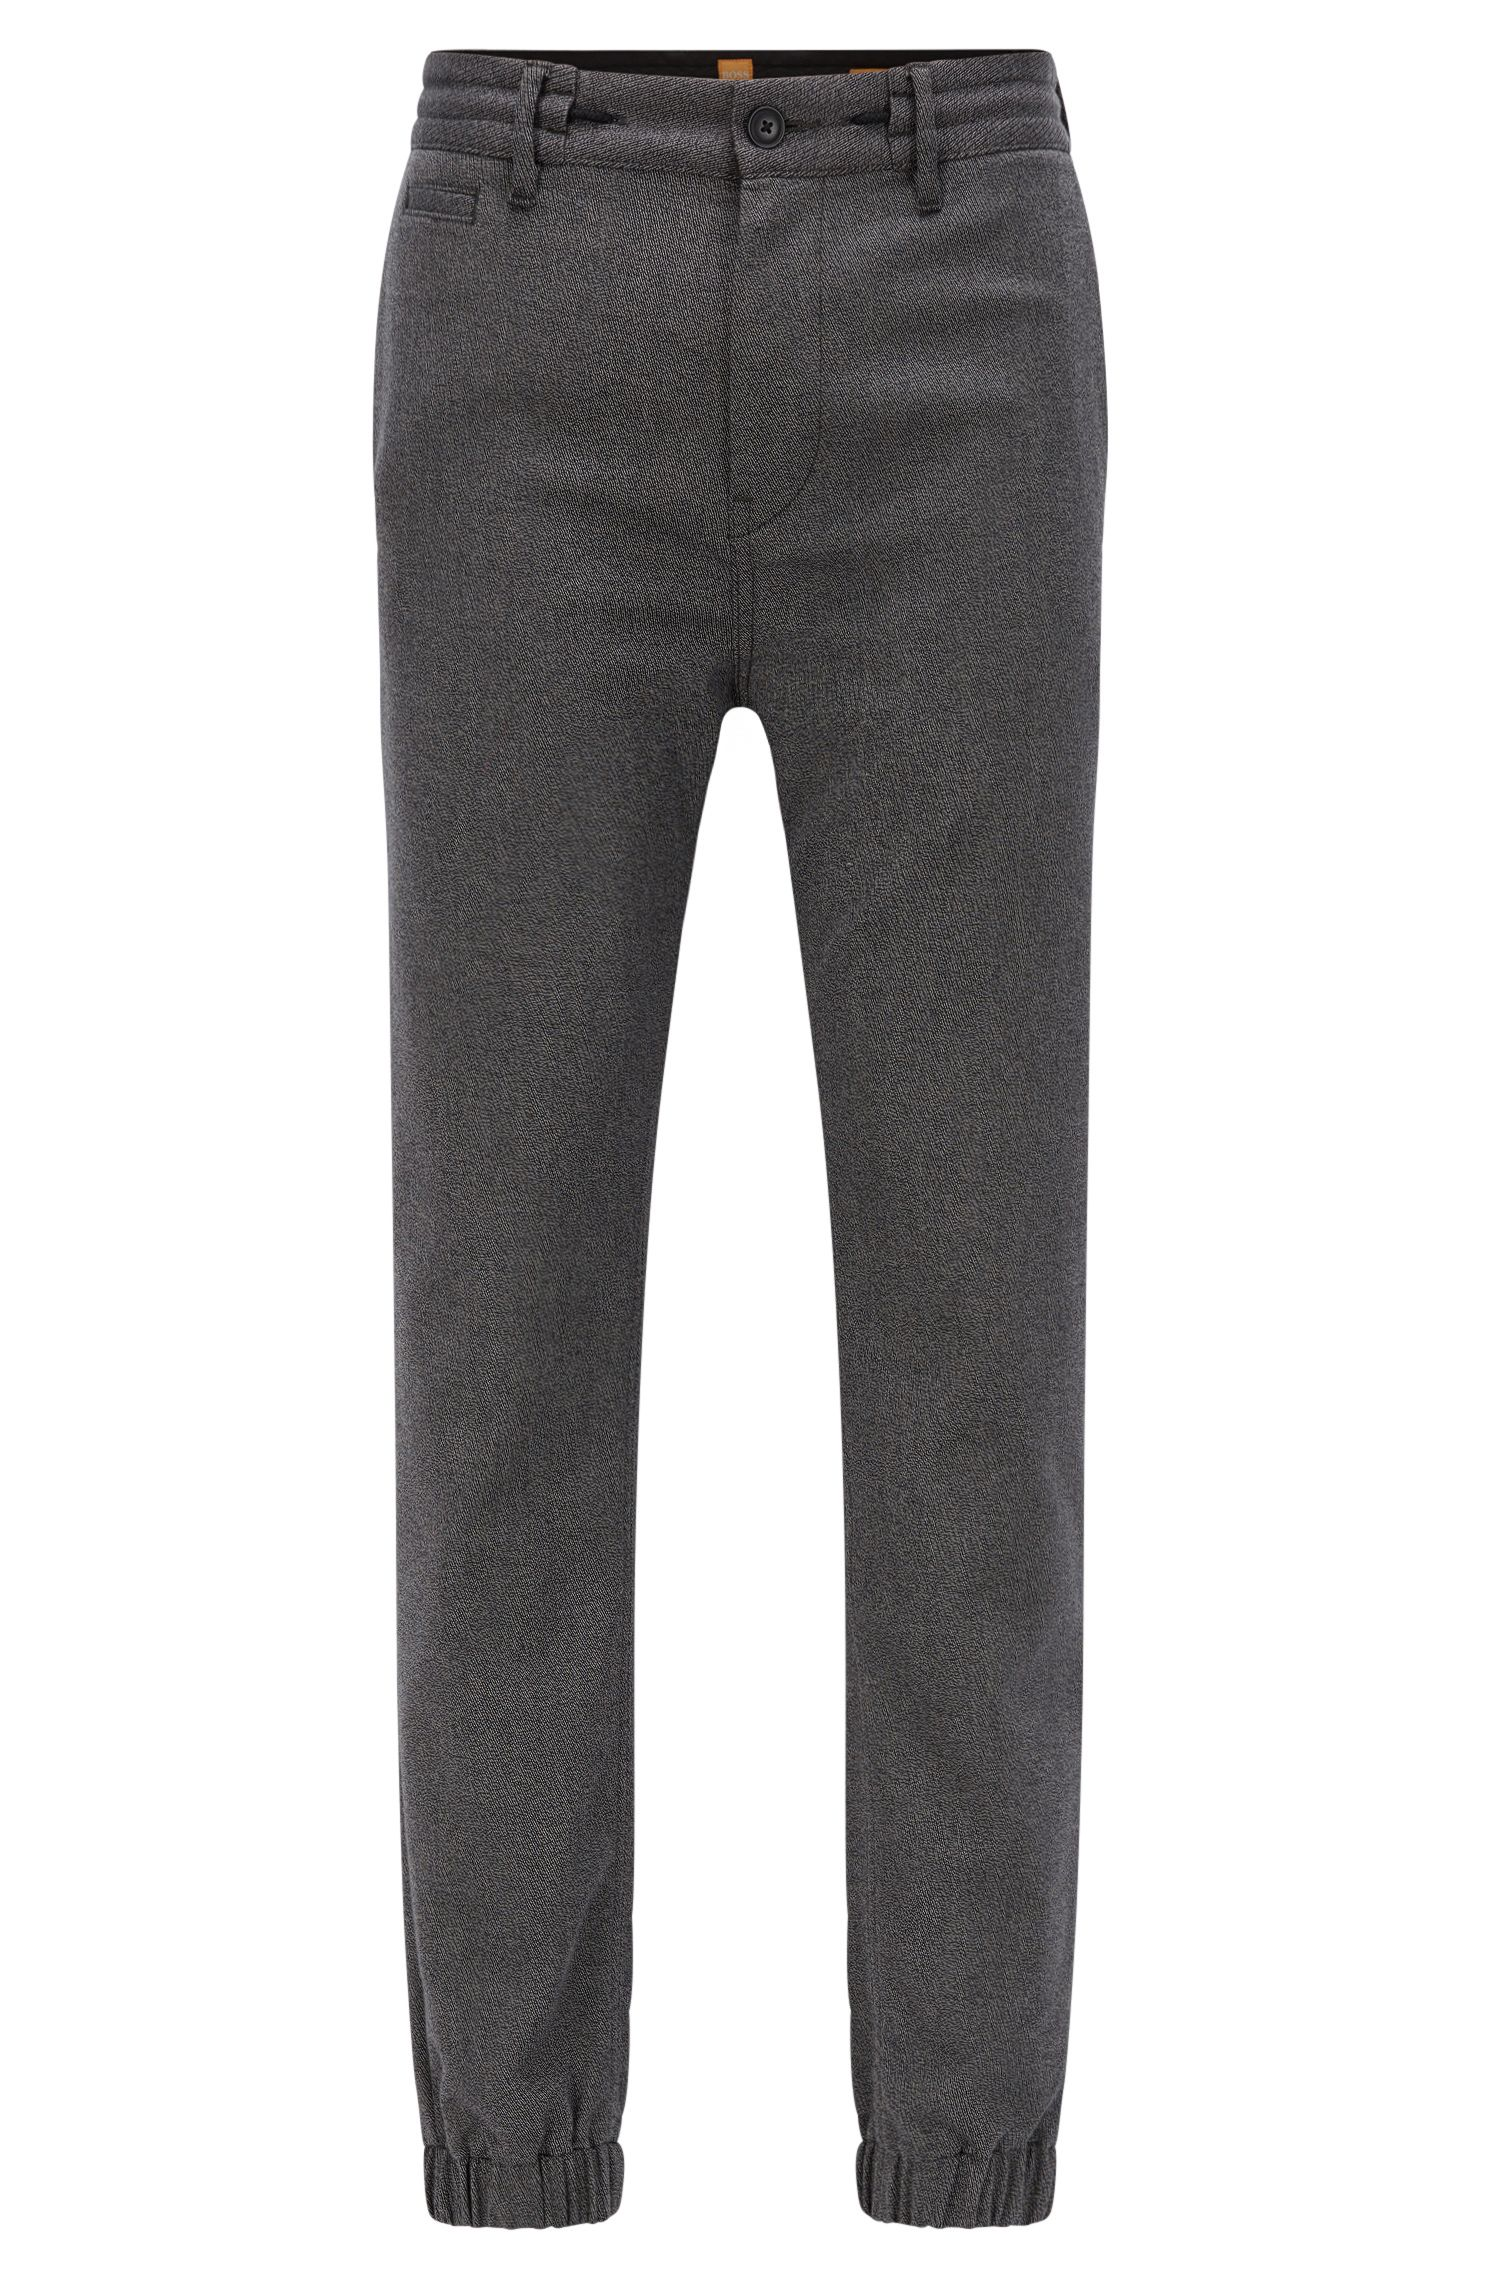 Twill Stretch Cotton Pant, Tapered Fit | Siman